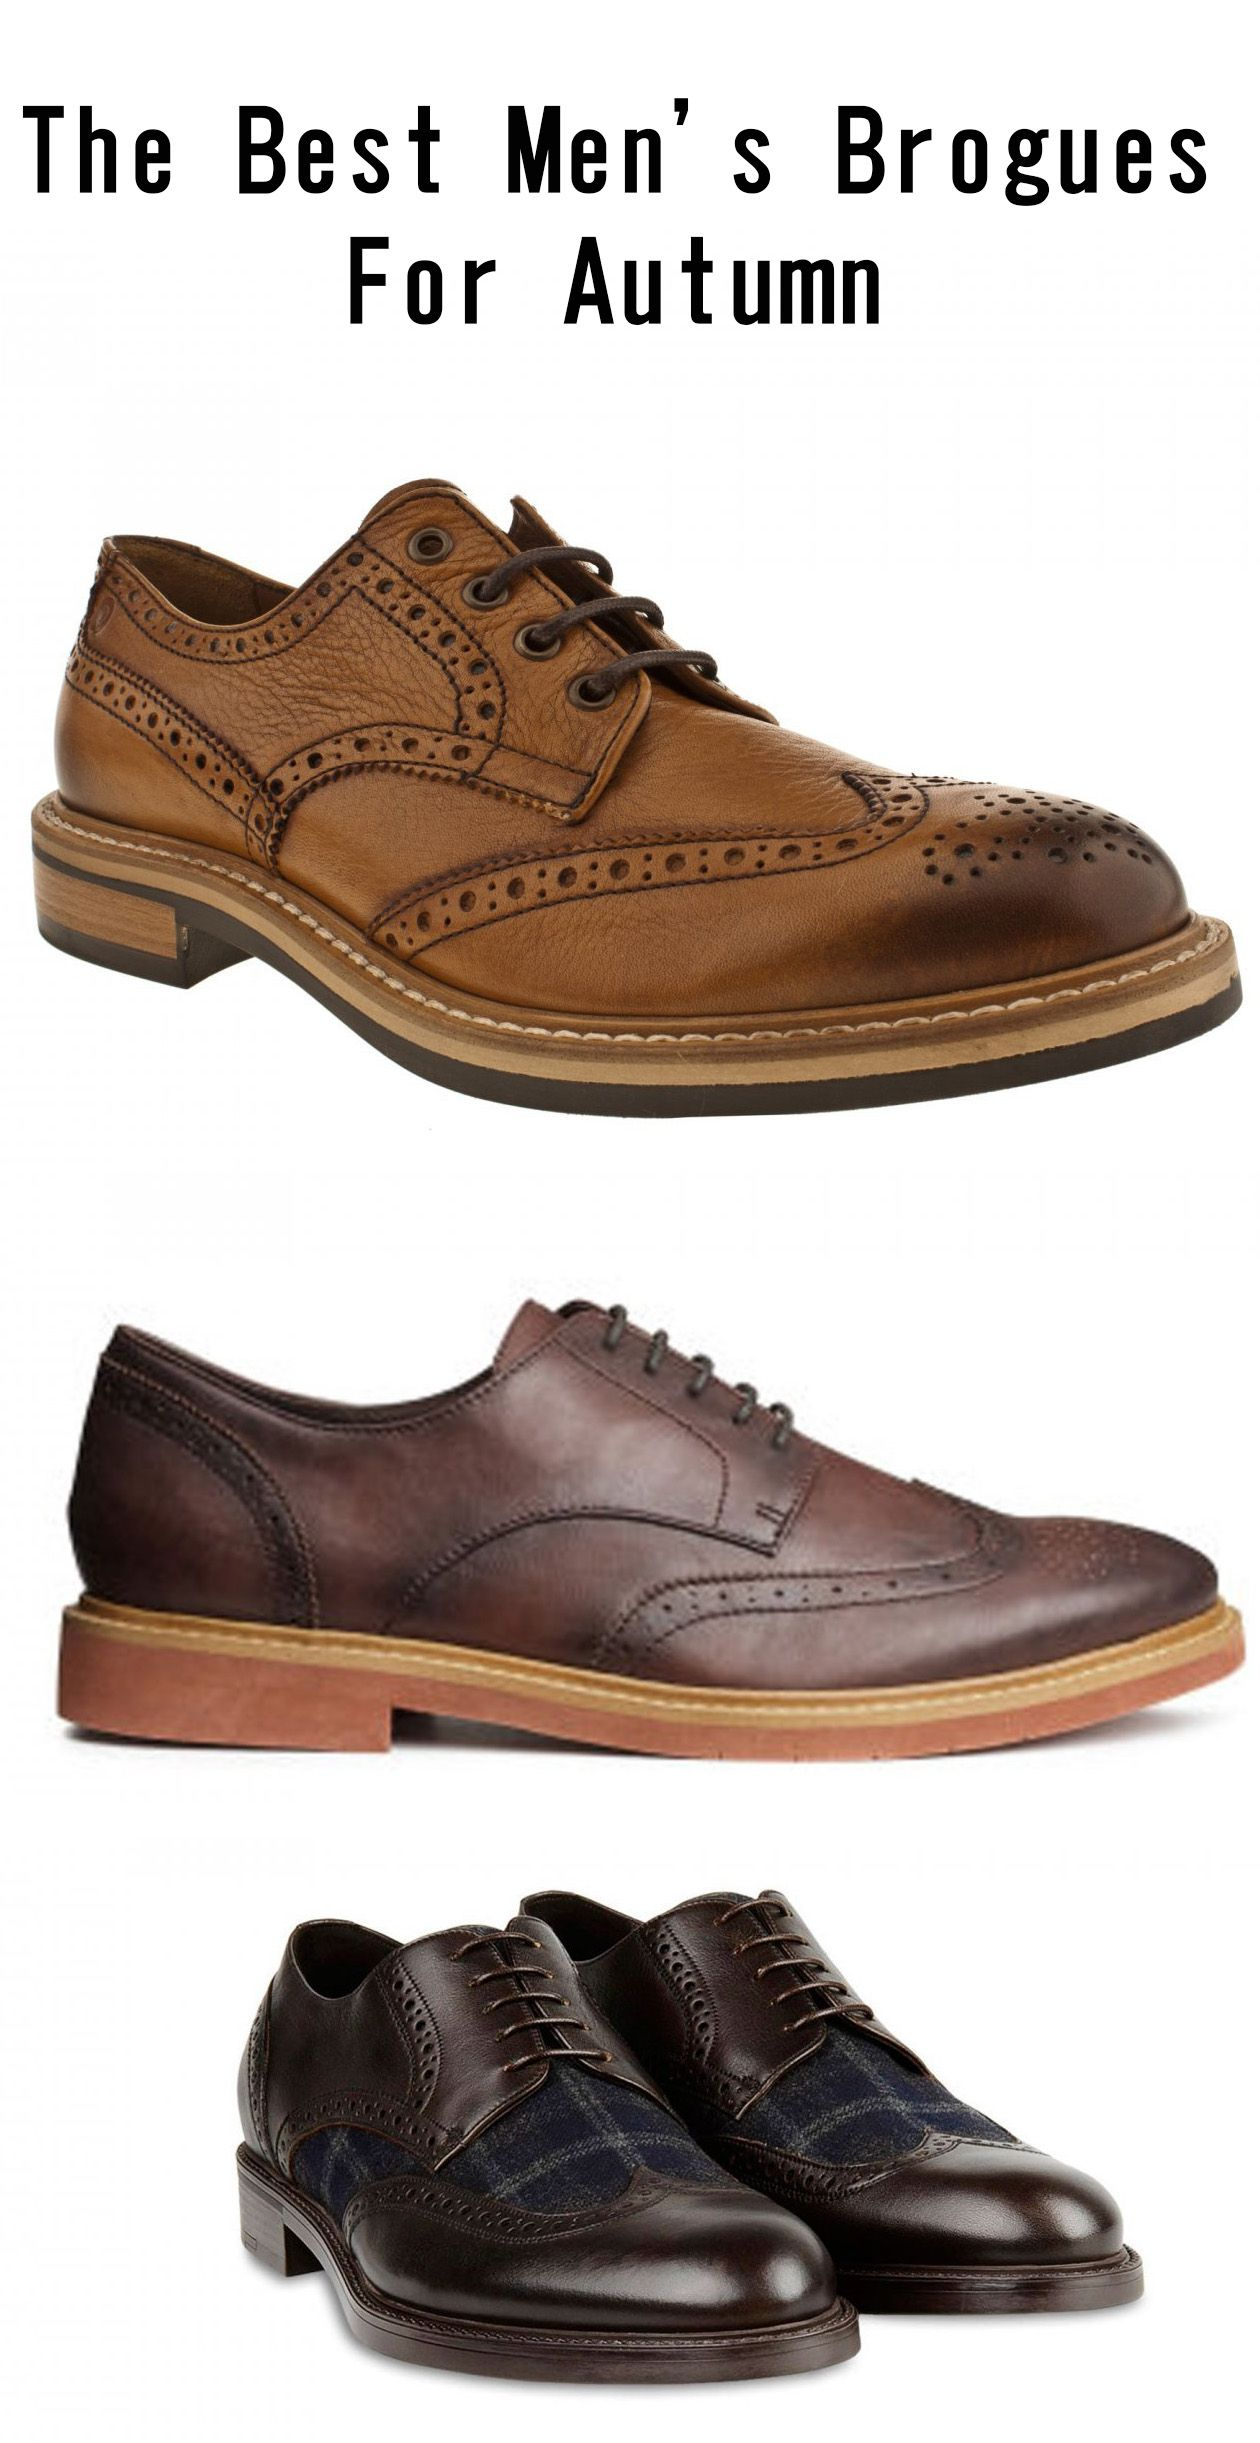 Forum on this topic: The Best Brogues For Men, the-best-brogues-for-men/